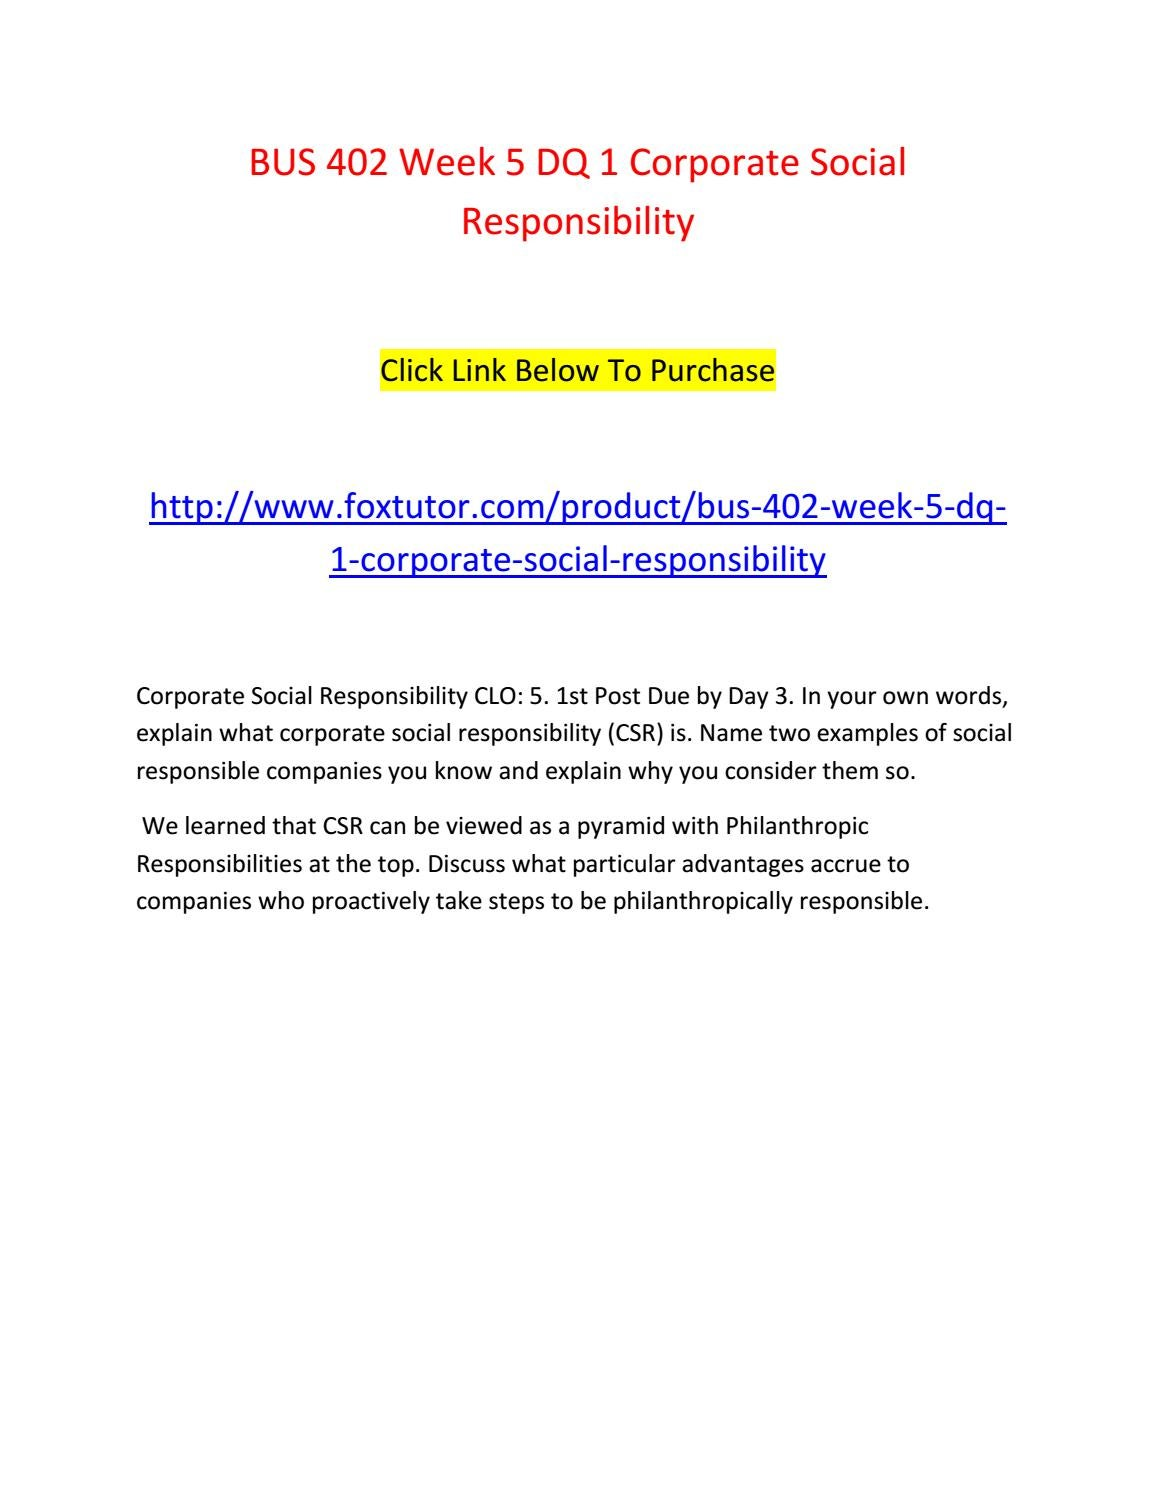 Bus 402 Week 5 Dq 1 Corporate Social Responsibility By Bus402ft Issuu